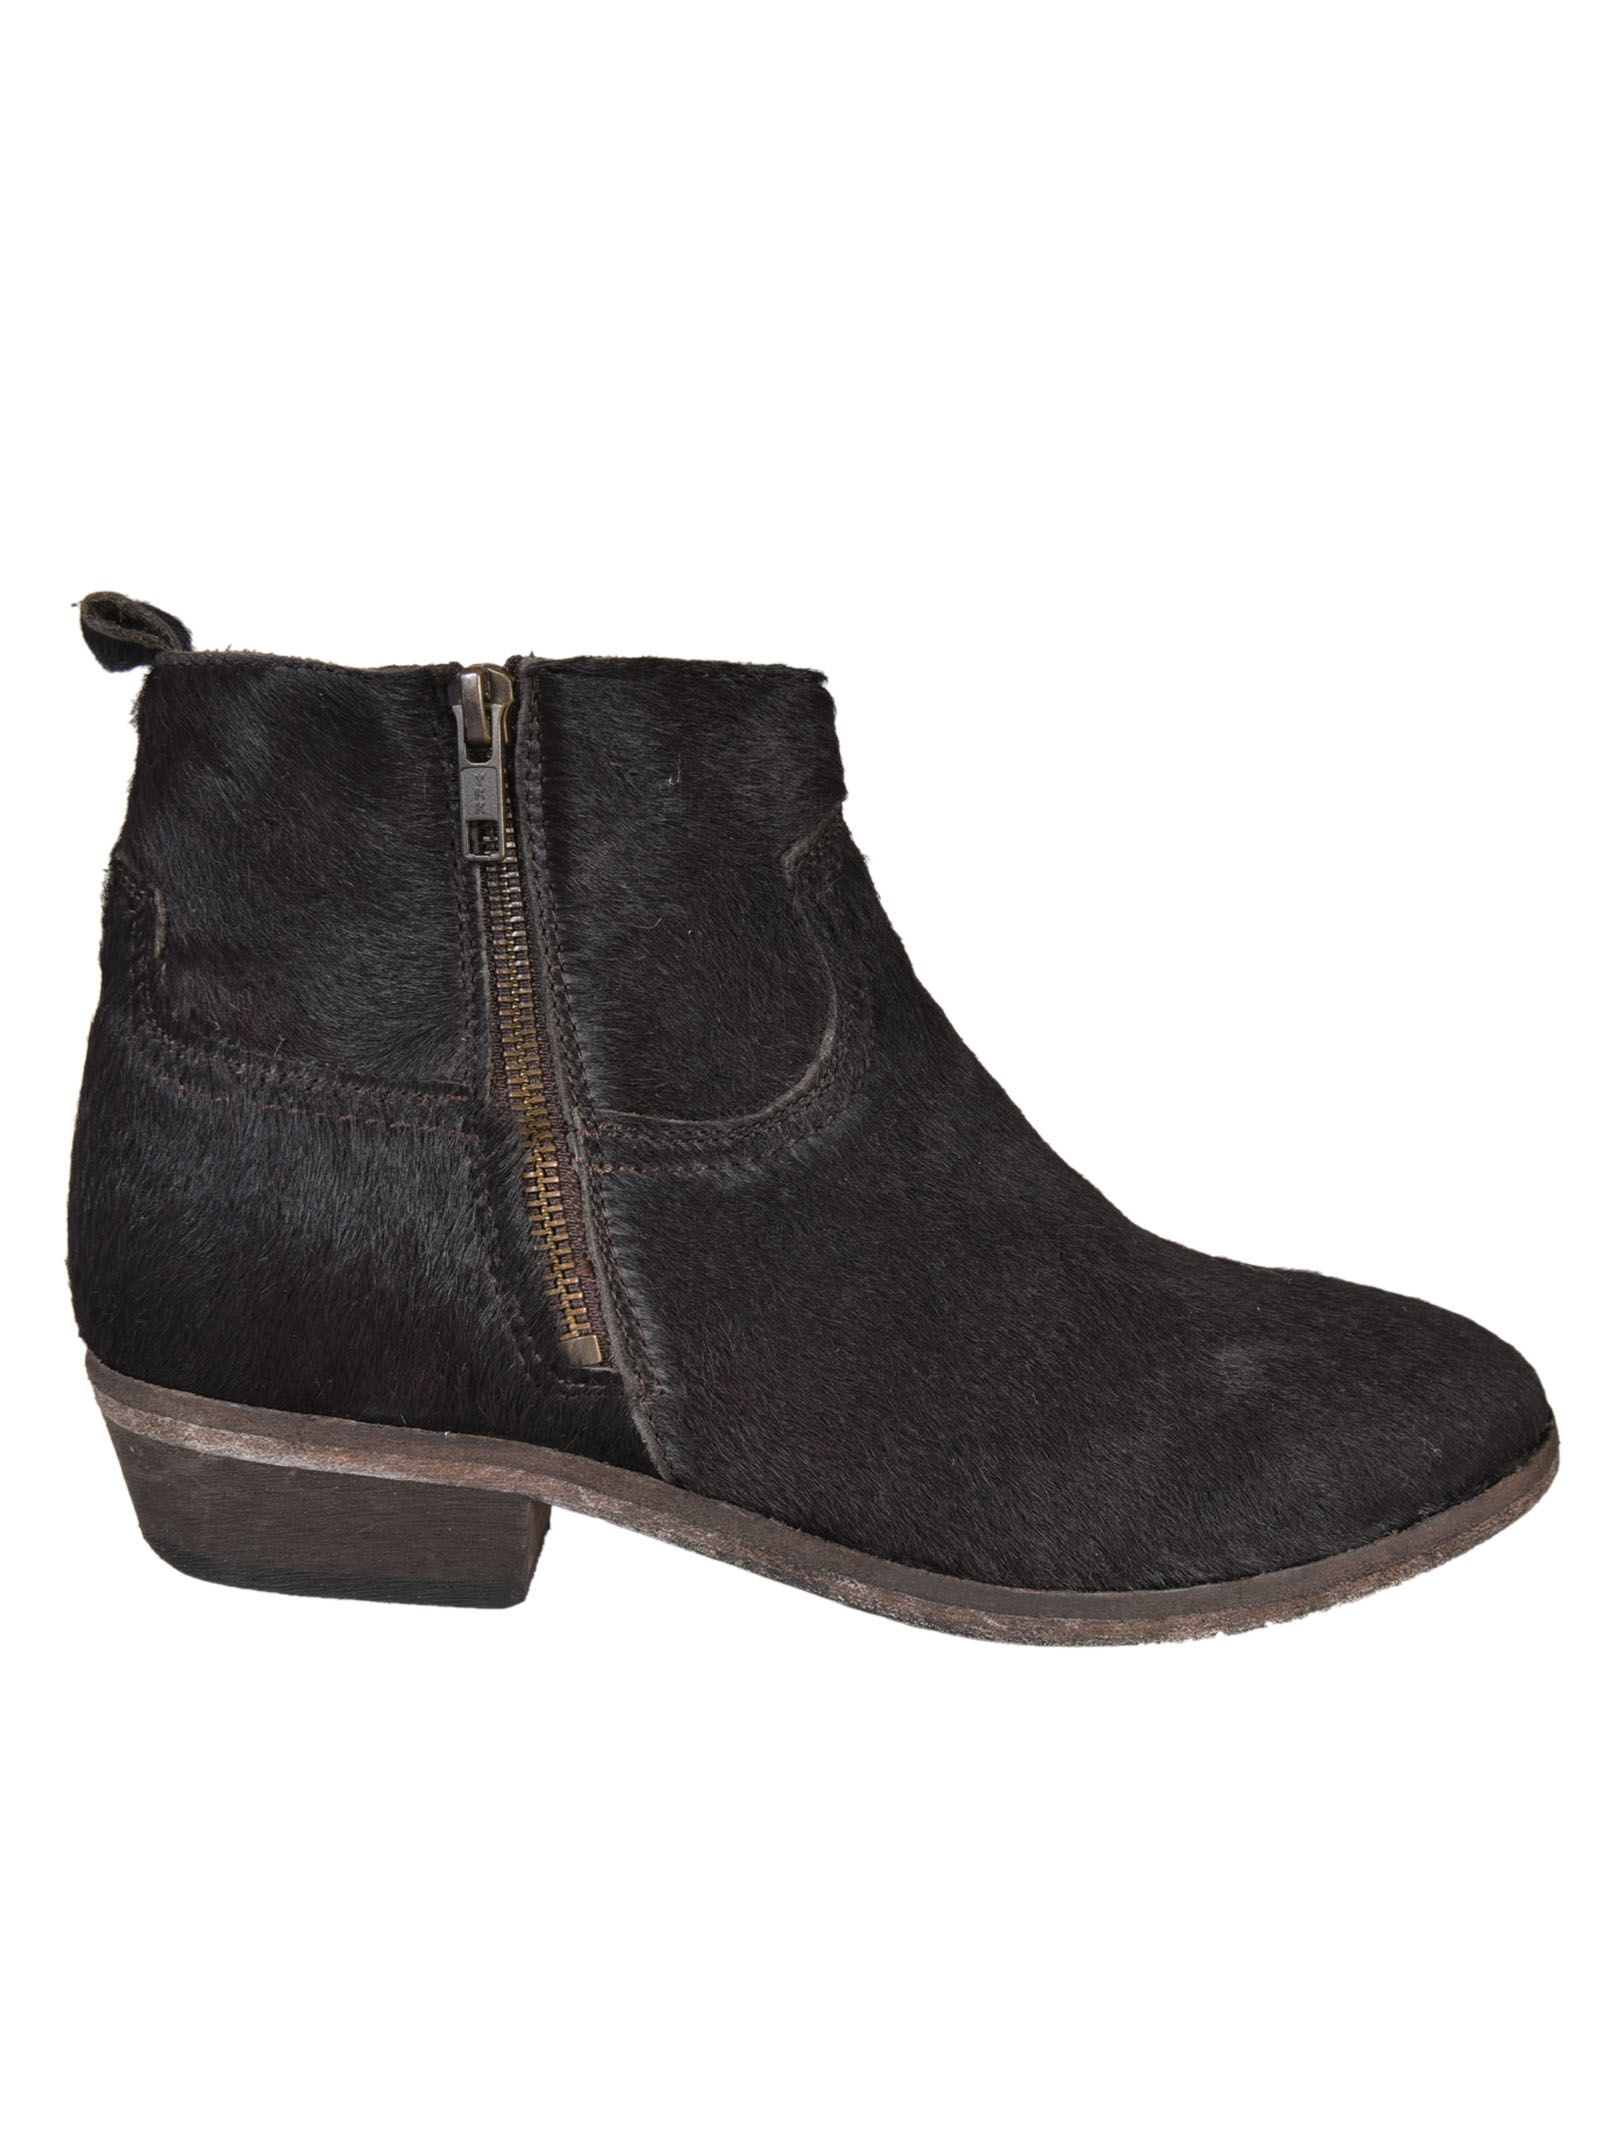 CATARINA MARTINS Ankle boot Black Women